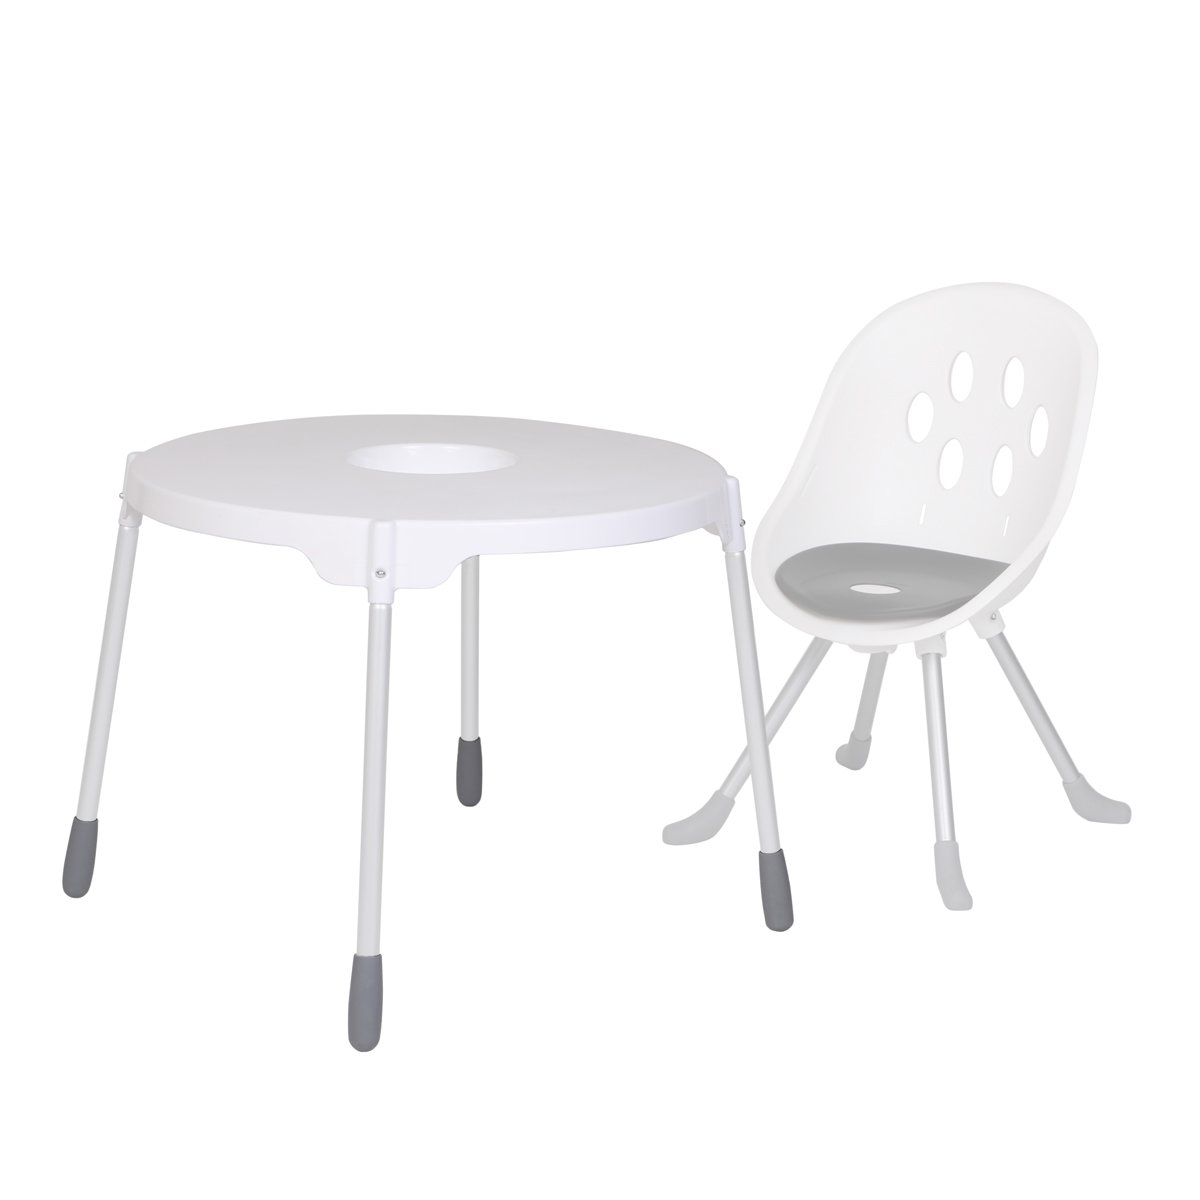 https://cdn.accentuate.io/4720377036877/19466203824322/phil_and_teds_poppy_table_top_with_leg_set_and_poppy_high_chair_1-v1630984576716.jpg?1200x1200